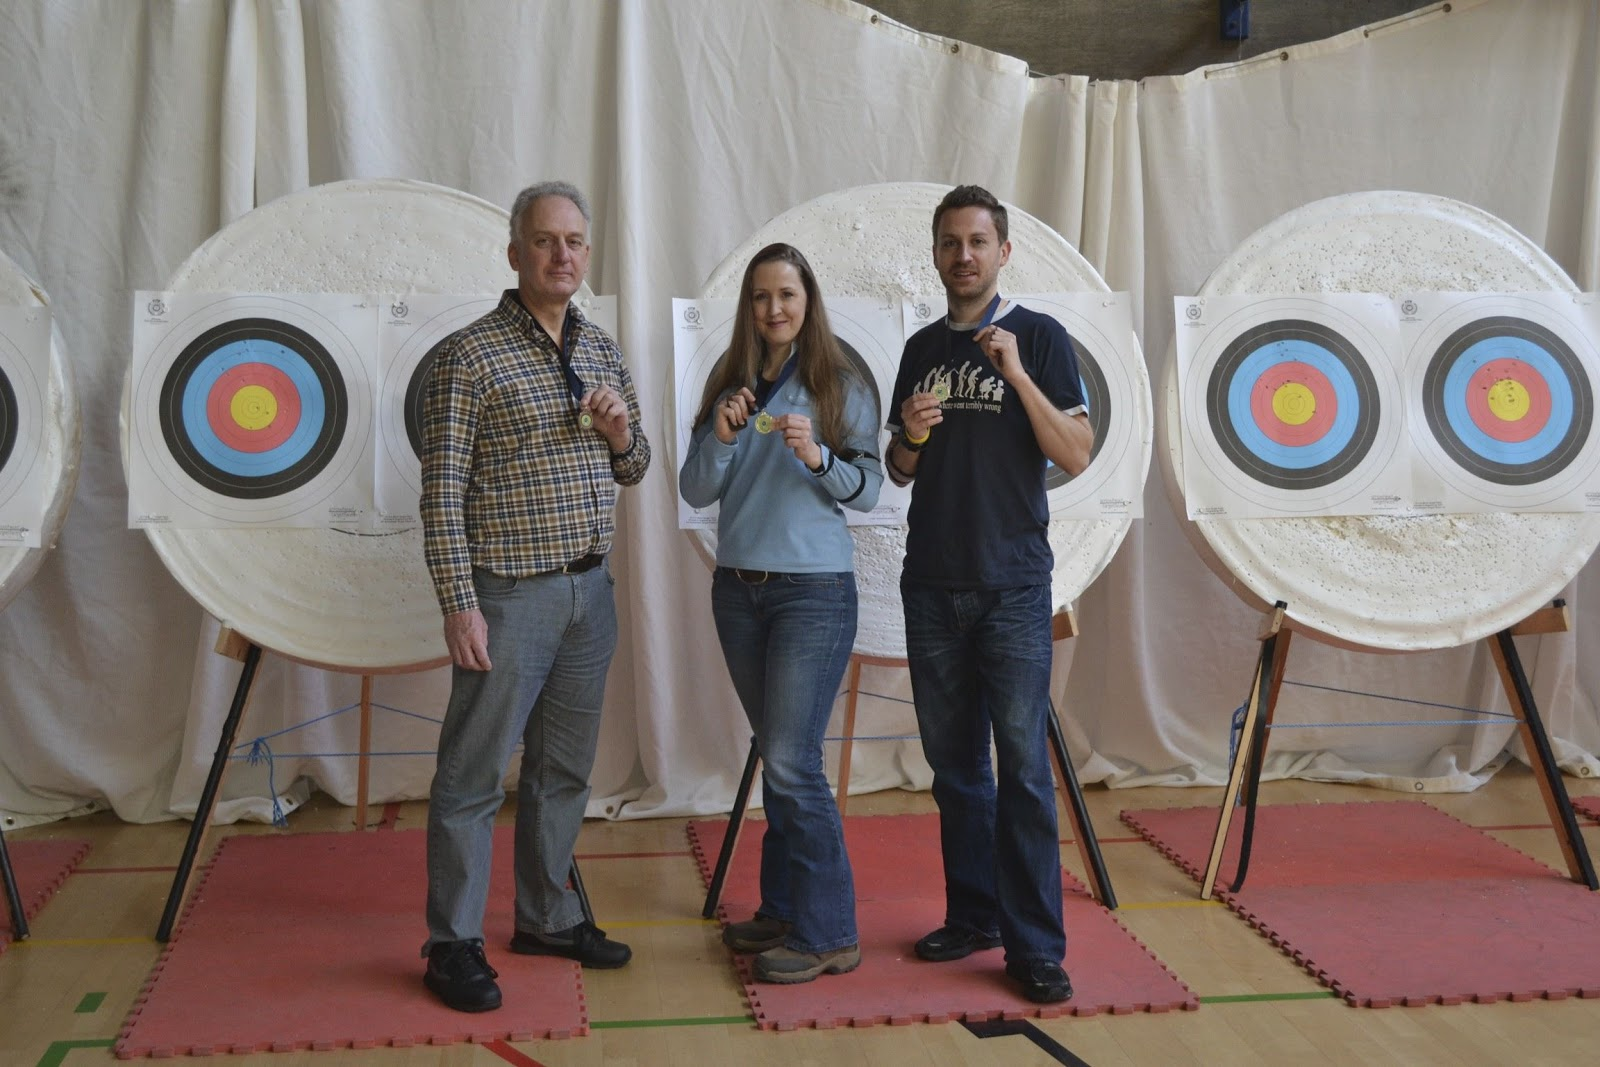 Traditional Archery Events 2020.About Us 2020 Archery Blog